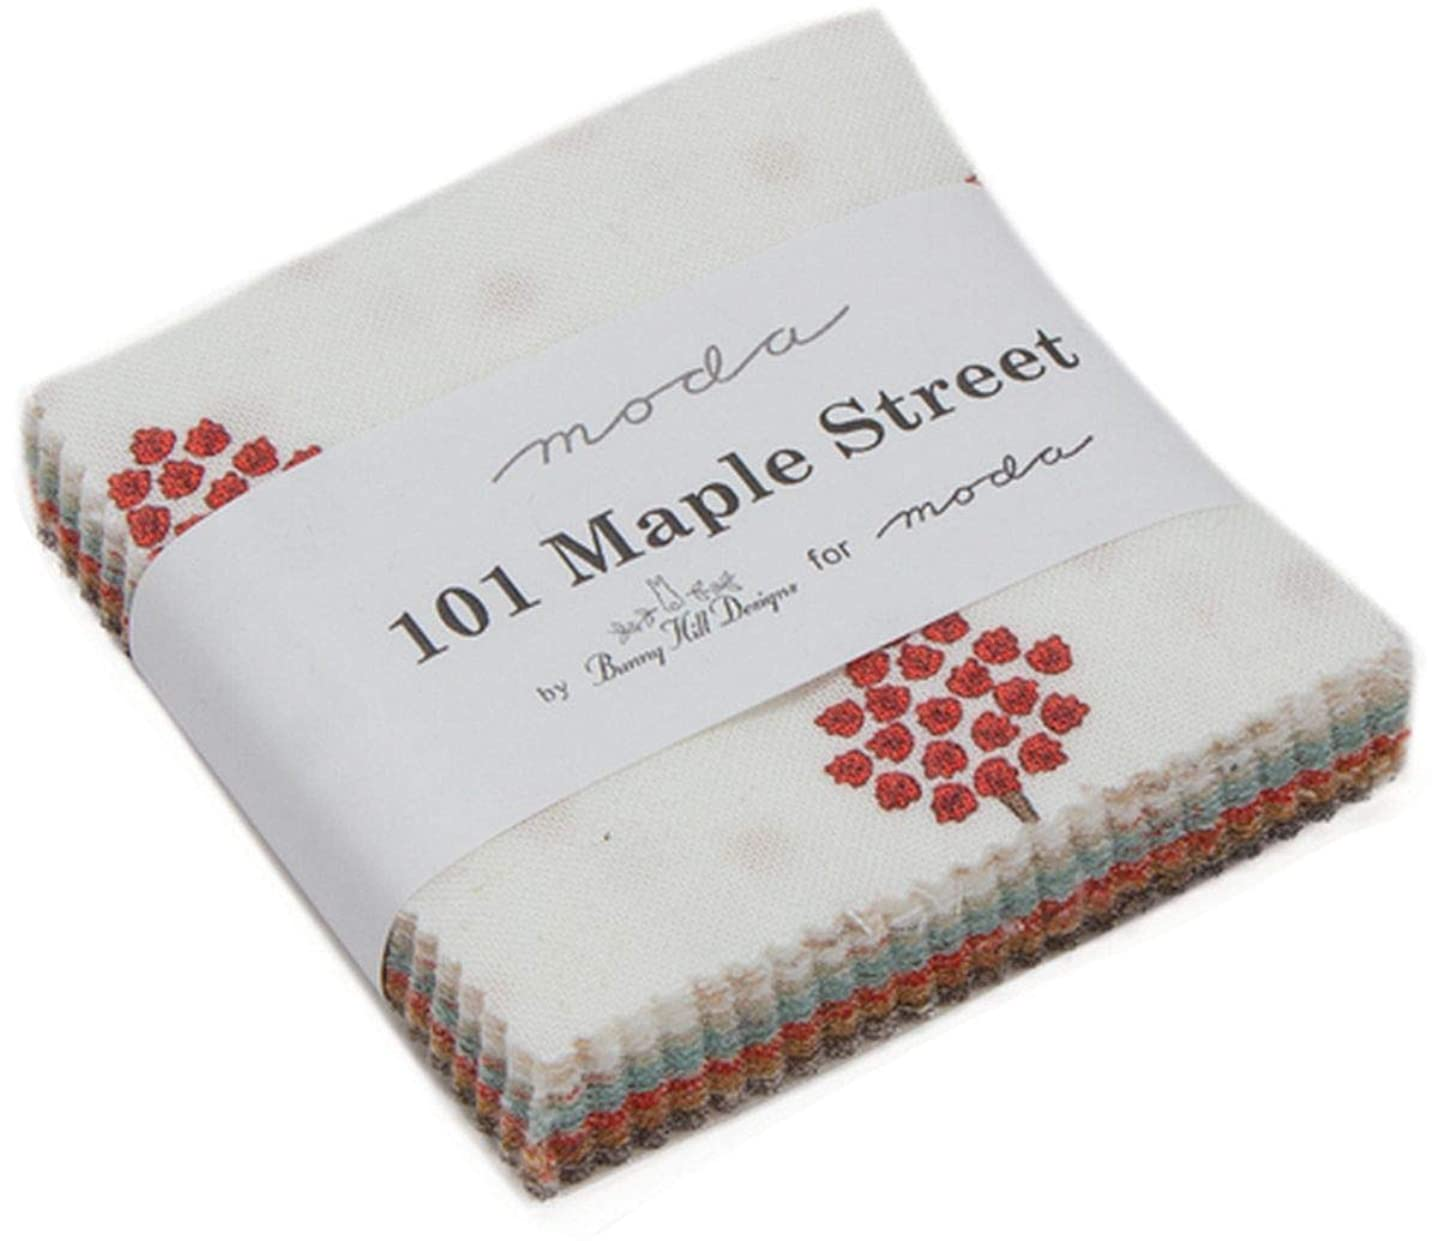 101 Maple Street Mini Charm Pack by Bunny Hill Designs; 42-2.5 Inch Precut Fabric Quilt Squares